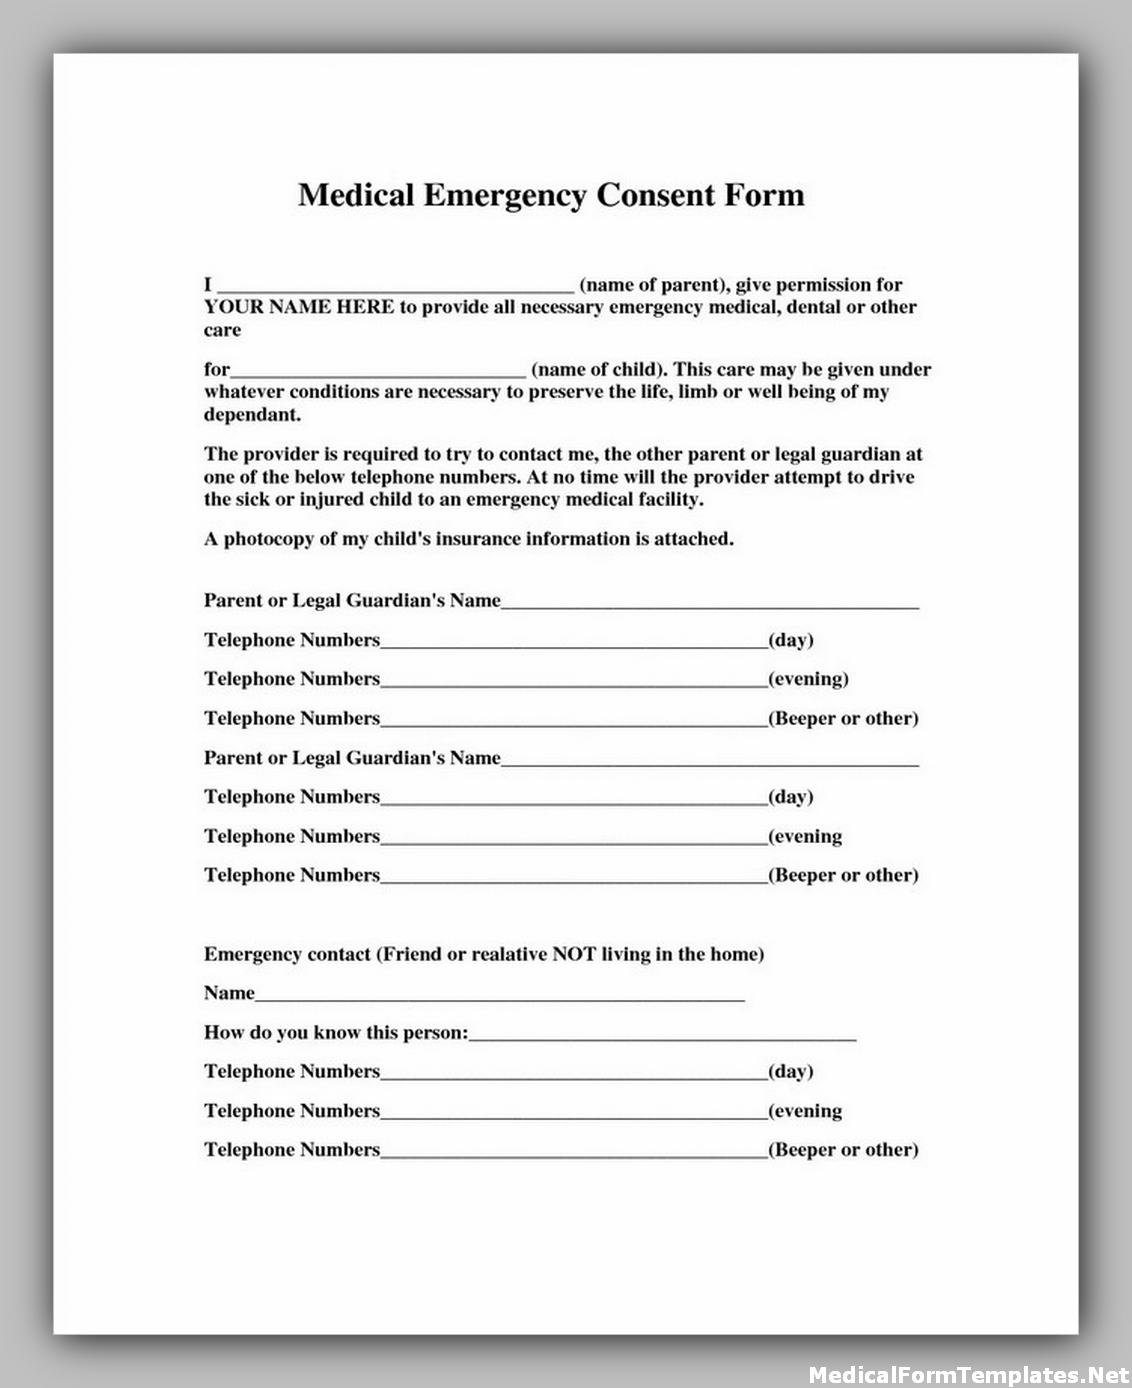 Emergency medical consent form for child